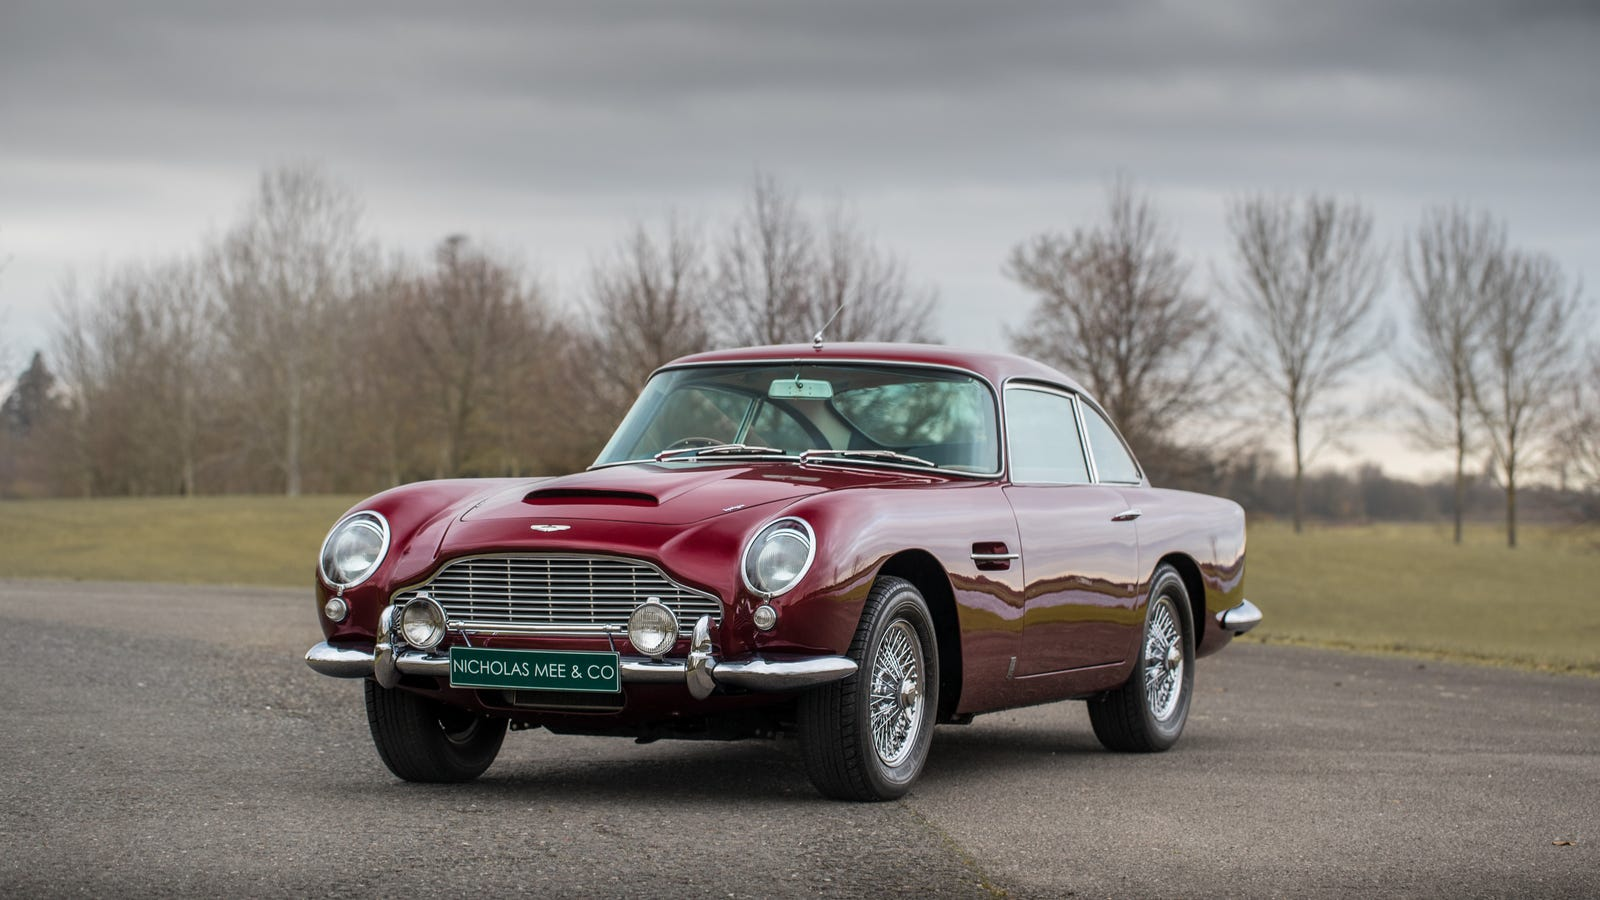 robert plant 39 s 1965 aston martin db5 is for sale and it 39 s a beauty. Black Bedroom Furniture Sets. Home Design Ideas